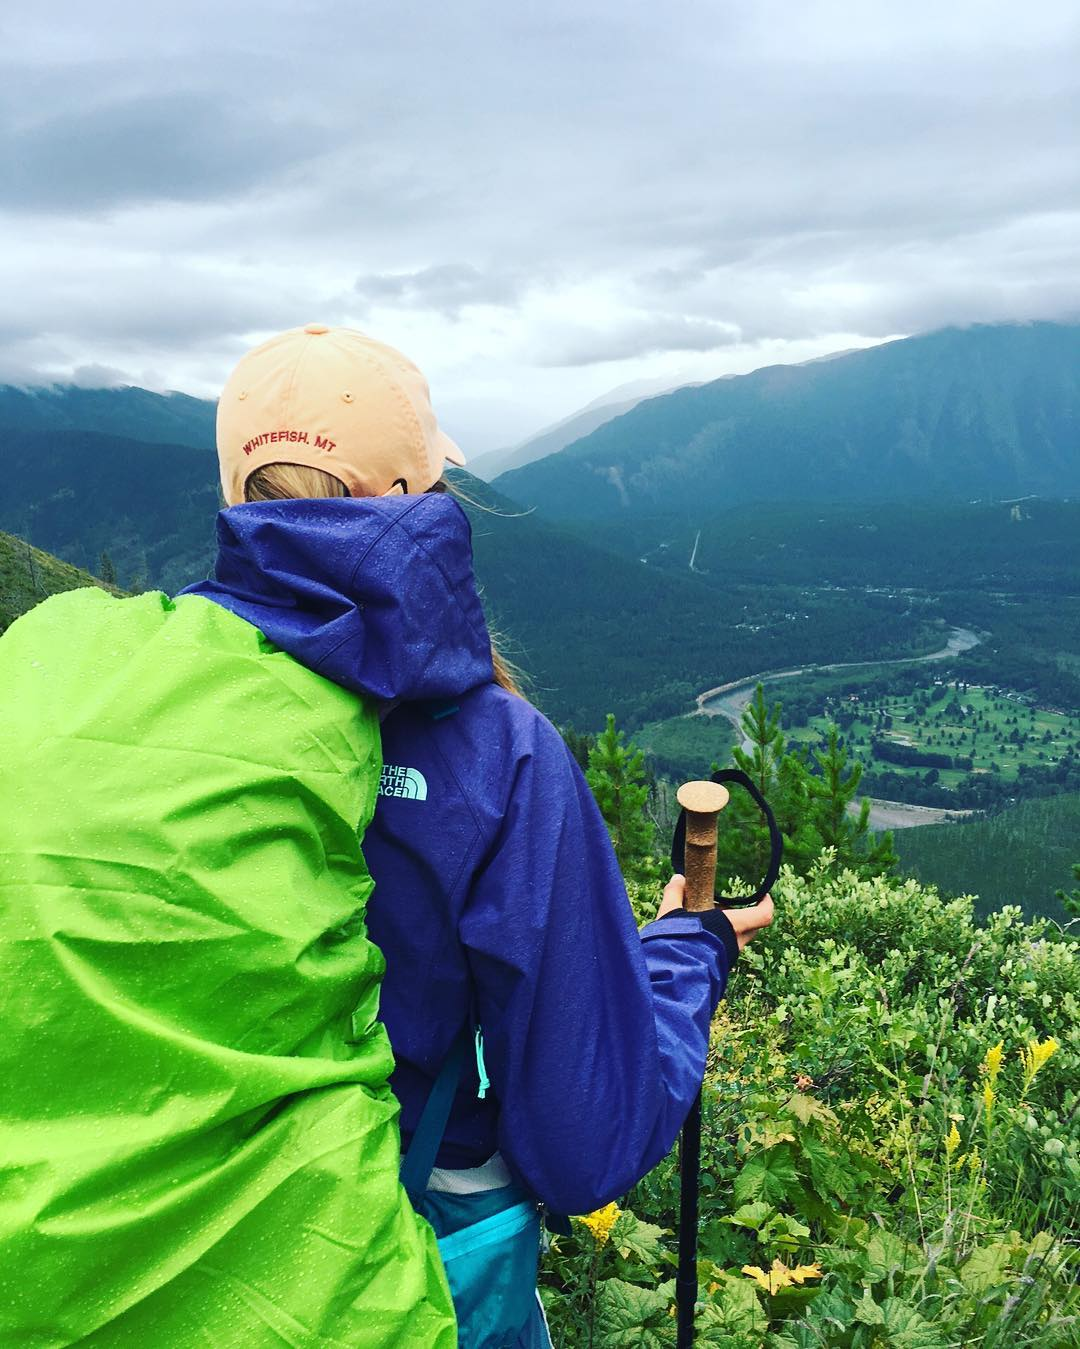 While some are busy at #ORshow, others are hiking @glacier_national_park! Check out team @1percentftp at the Great Bear Wilderness. Together, we're taking steps to rally greater collective action for #climatechange. Support our hike:...